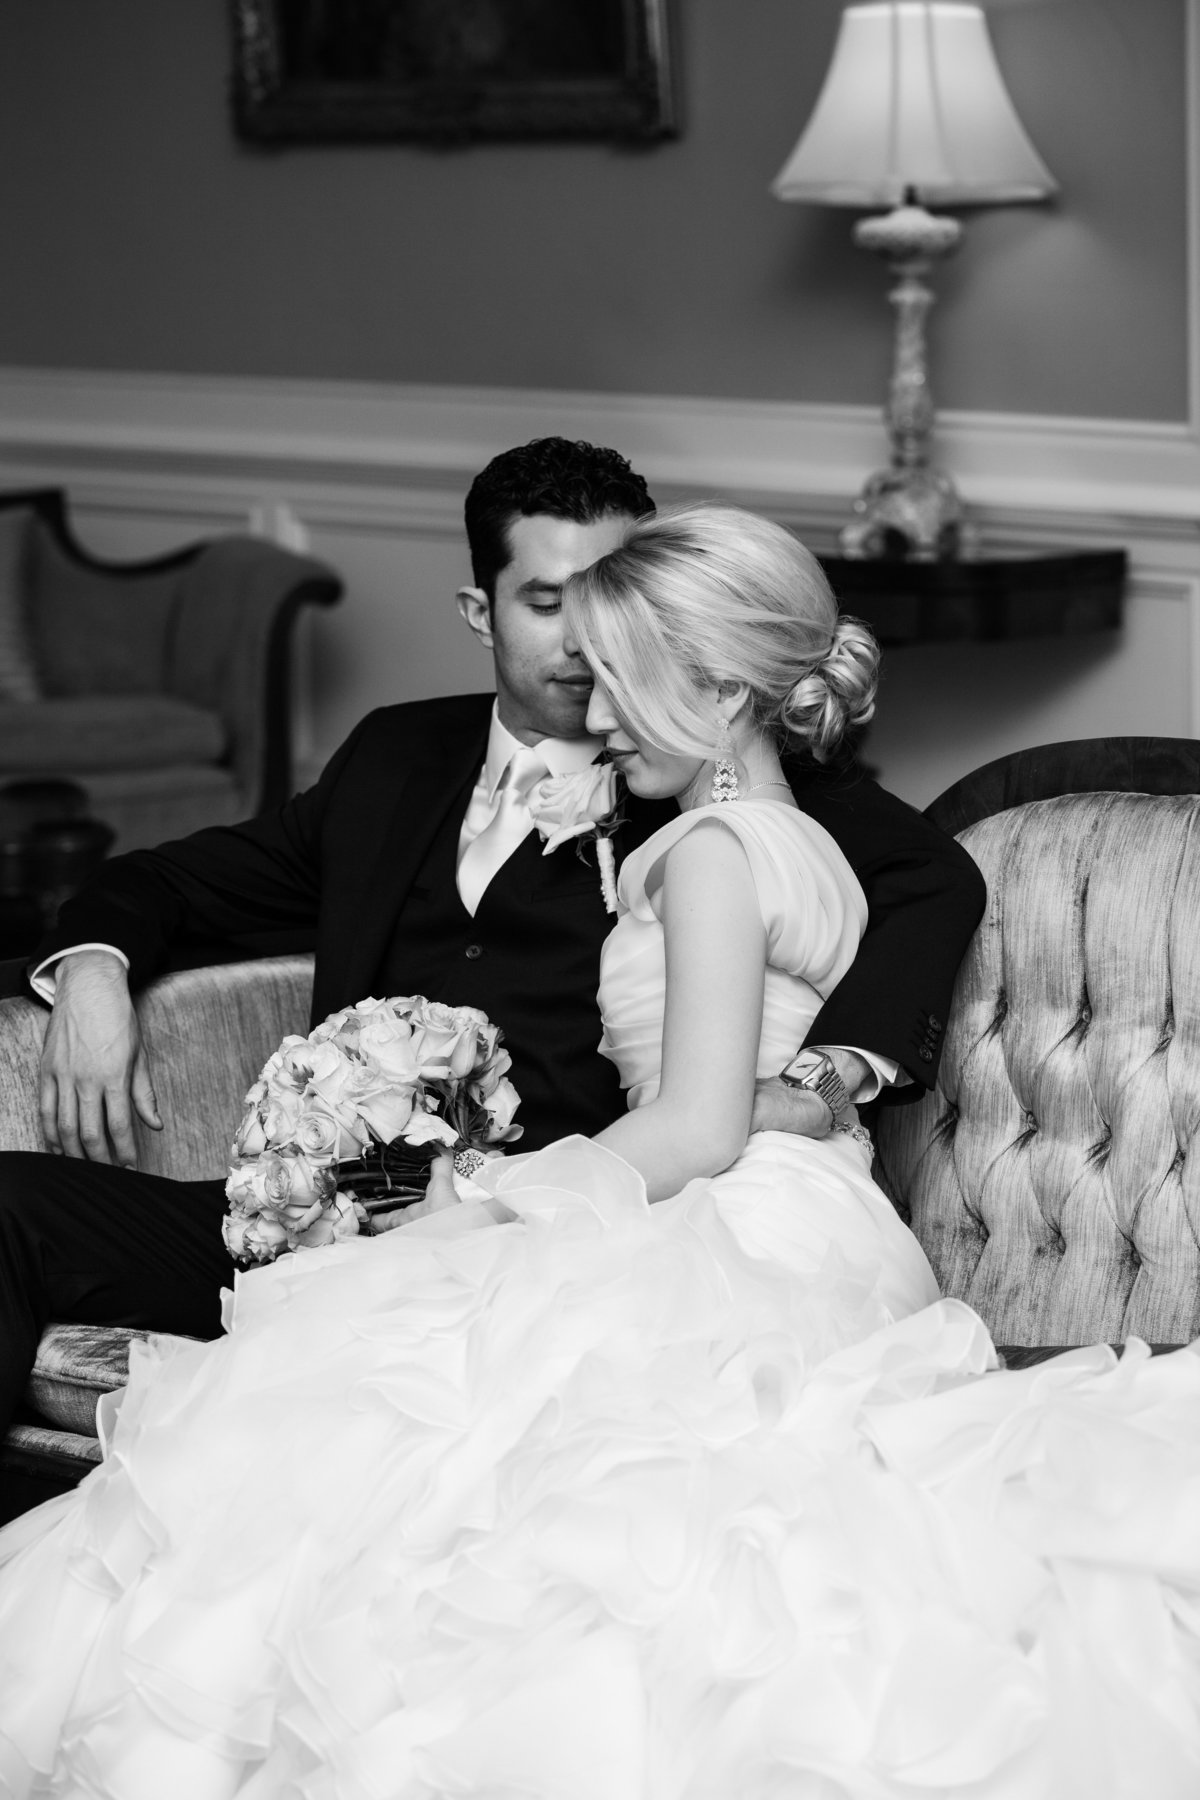 TFWC Mansion wedding photographer bride groom black white romantic pose 2312 San Gabriel St, Austin, TX 78705